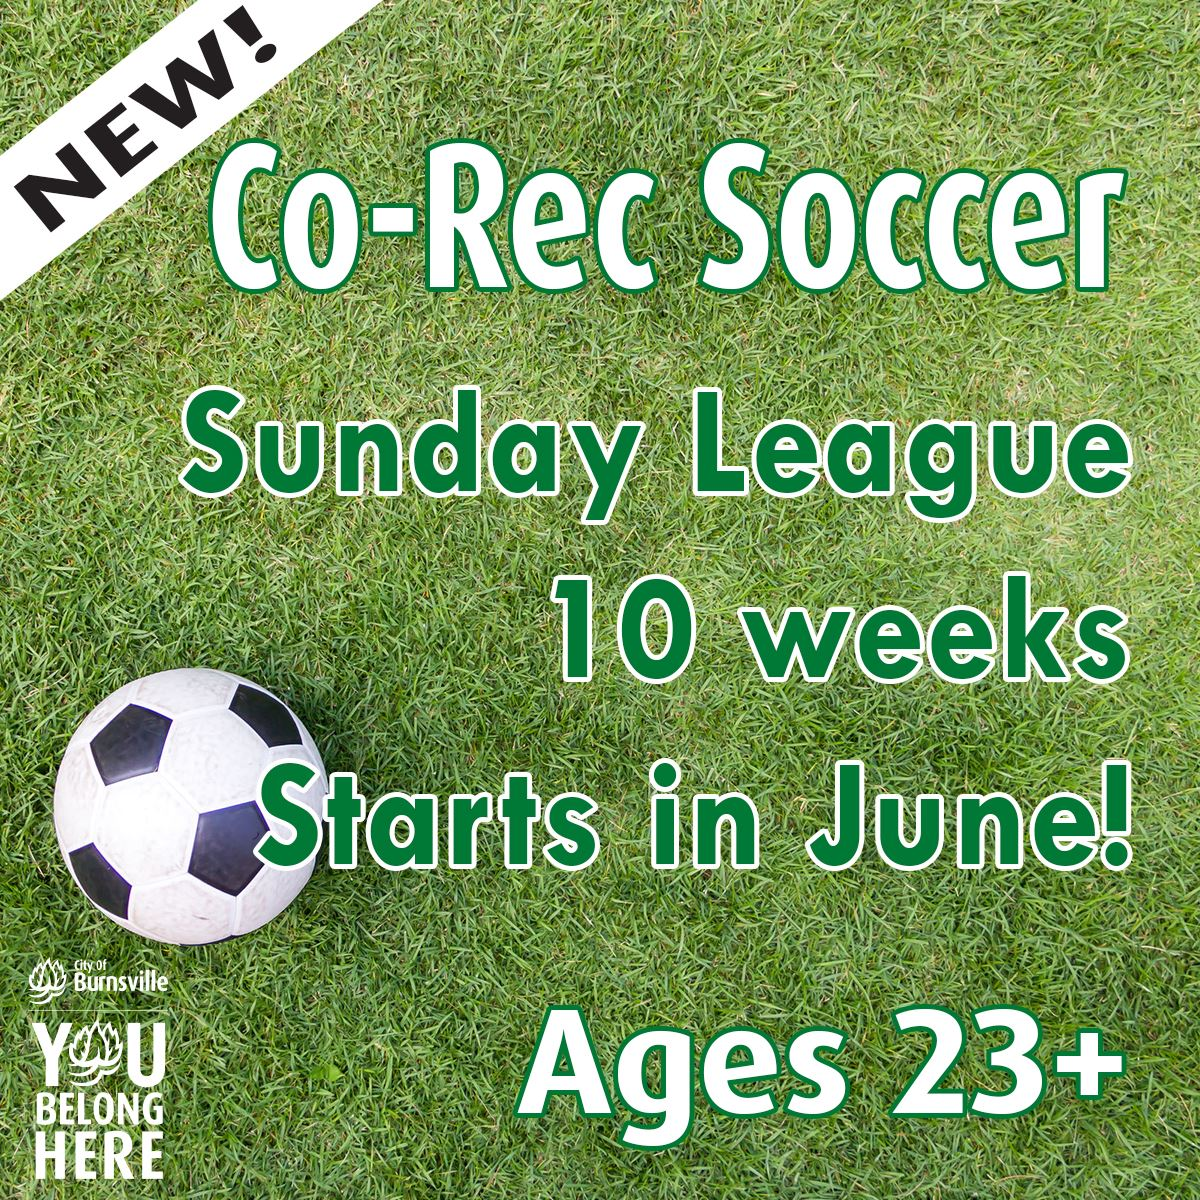 soccer ball on grass field. Text: Co-Rec Soccer Sunday League 10 weeks Ages 23 plus